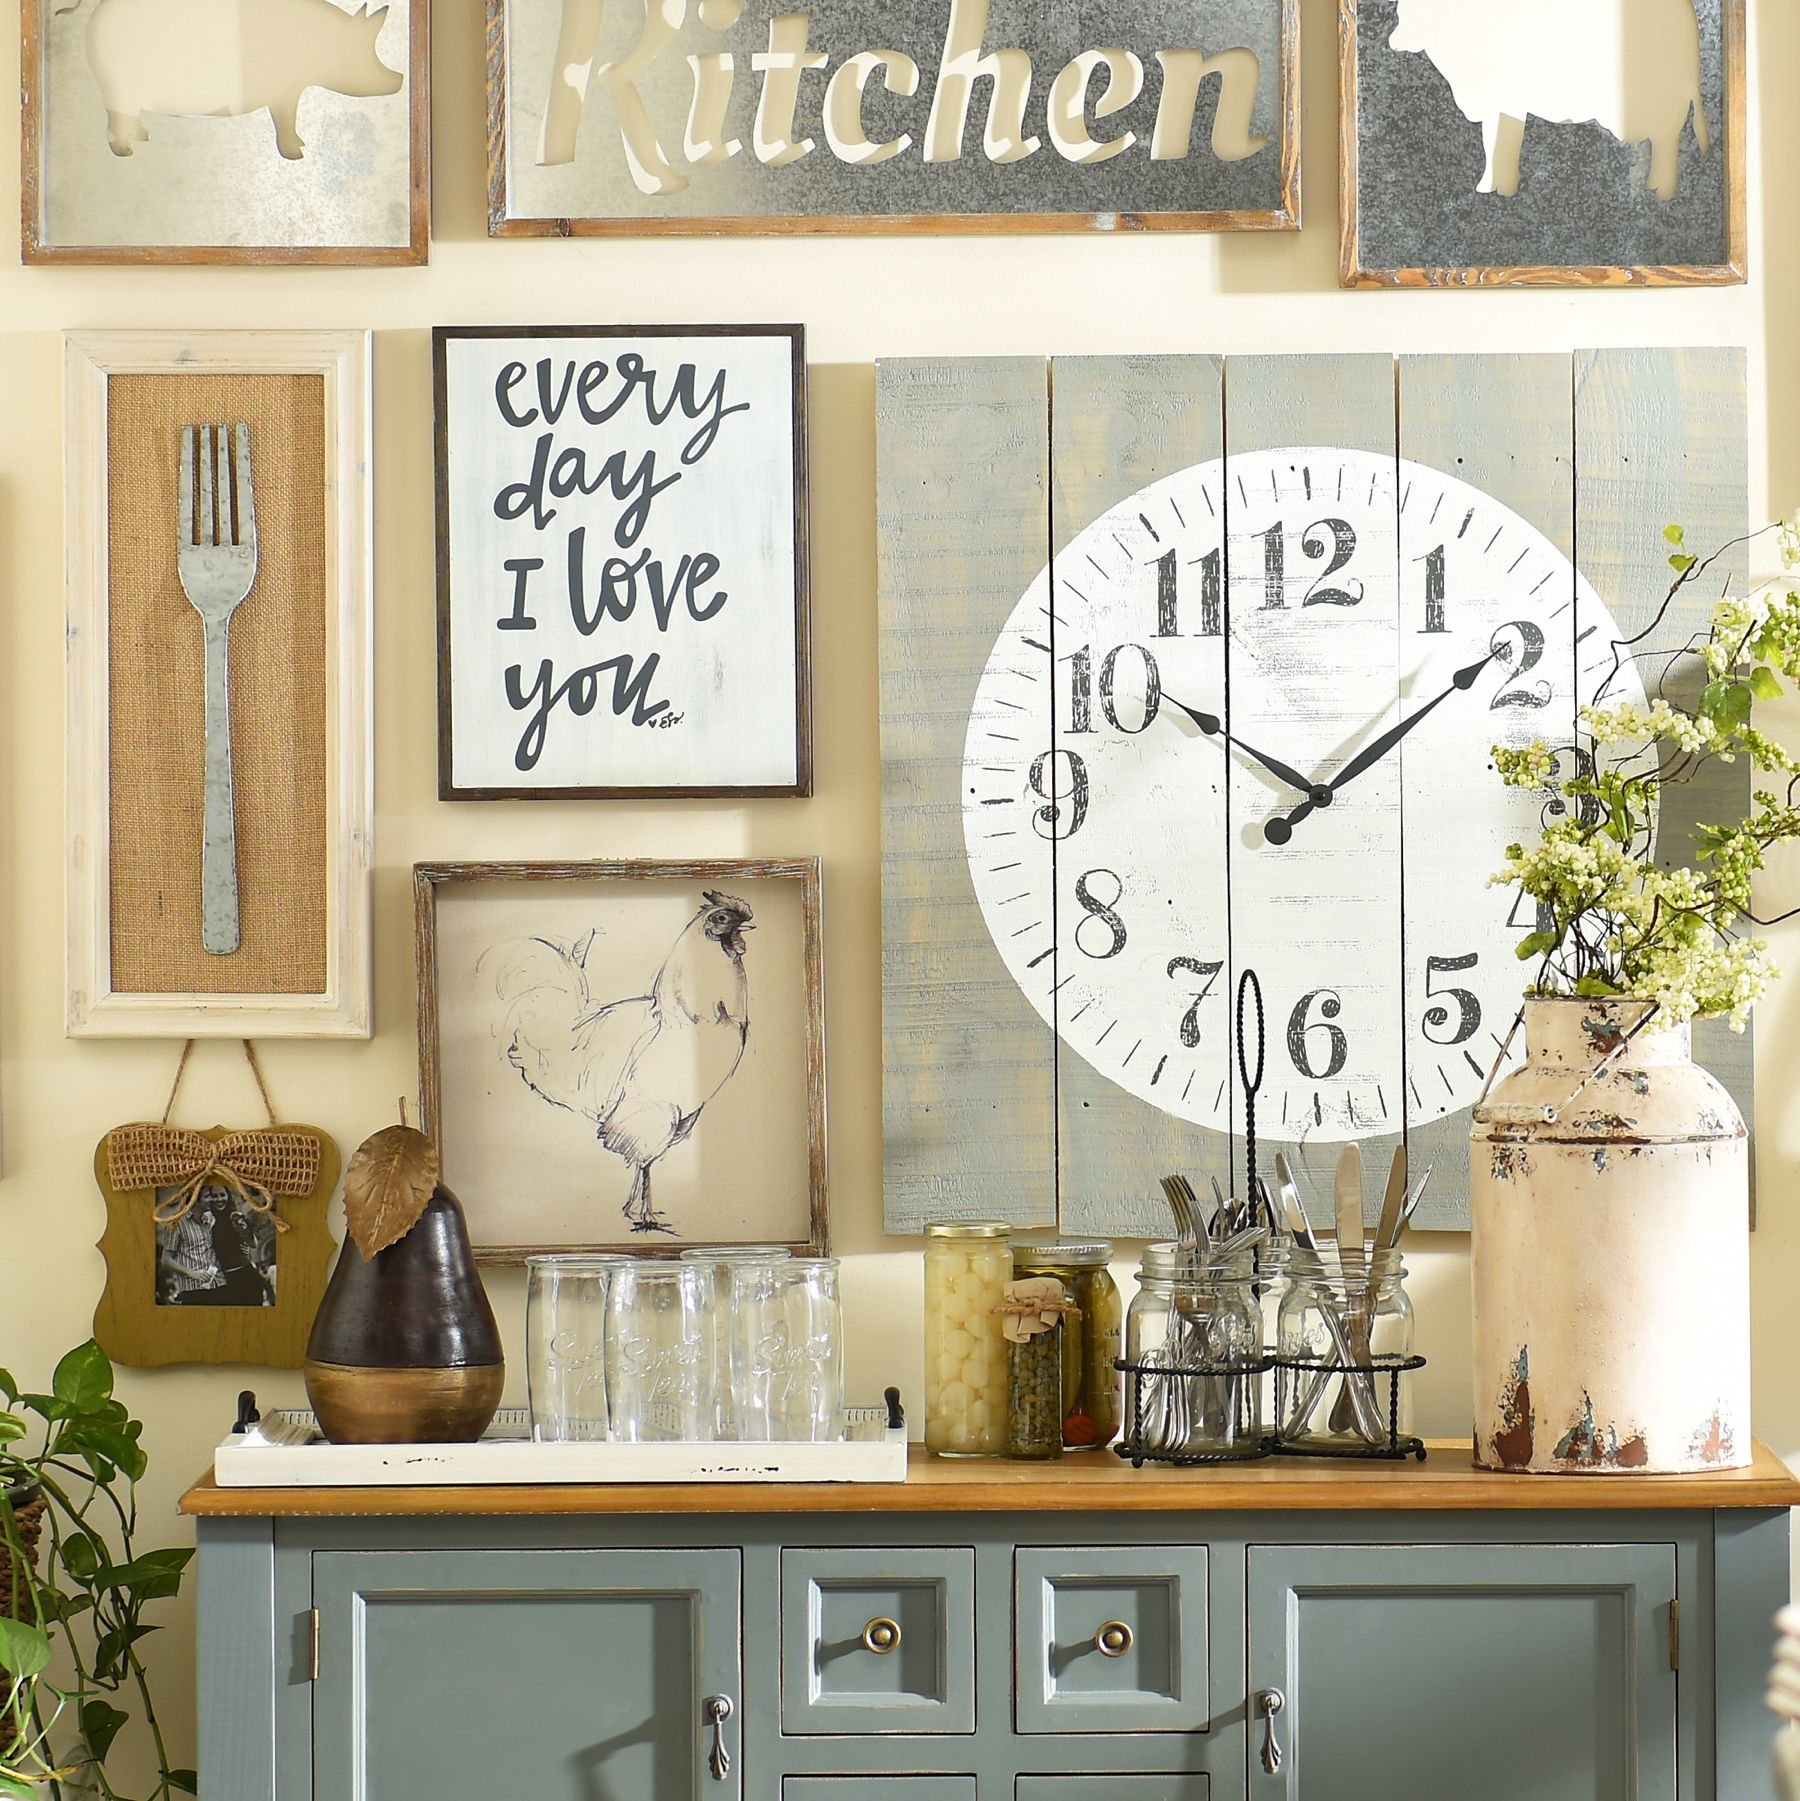 Be Unique And Give Your Home A Cozy Farmhouse Feel. With